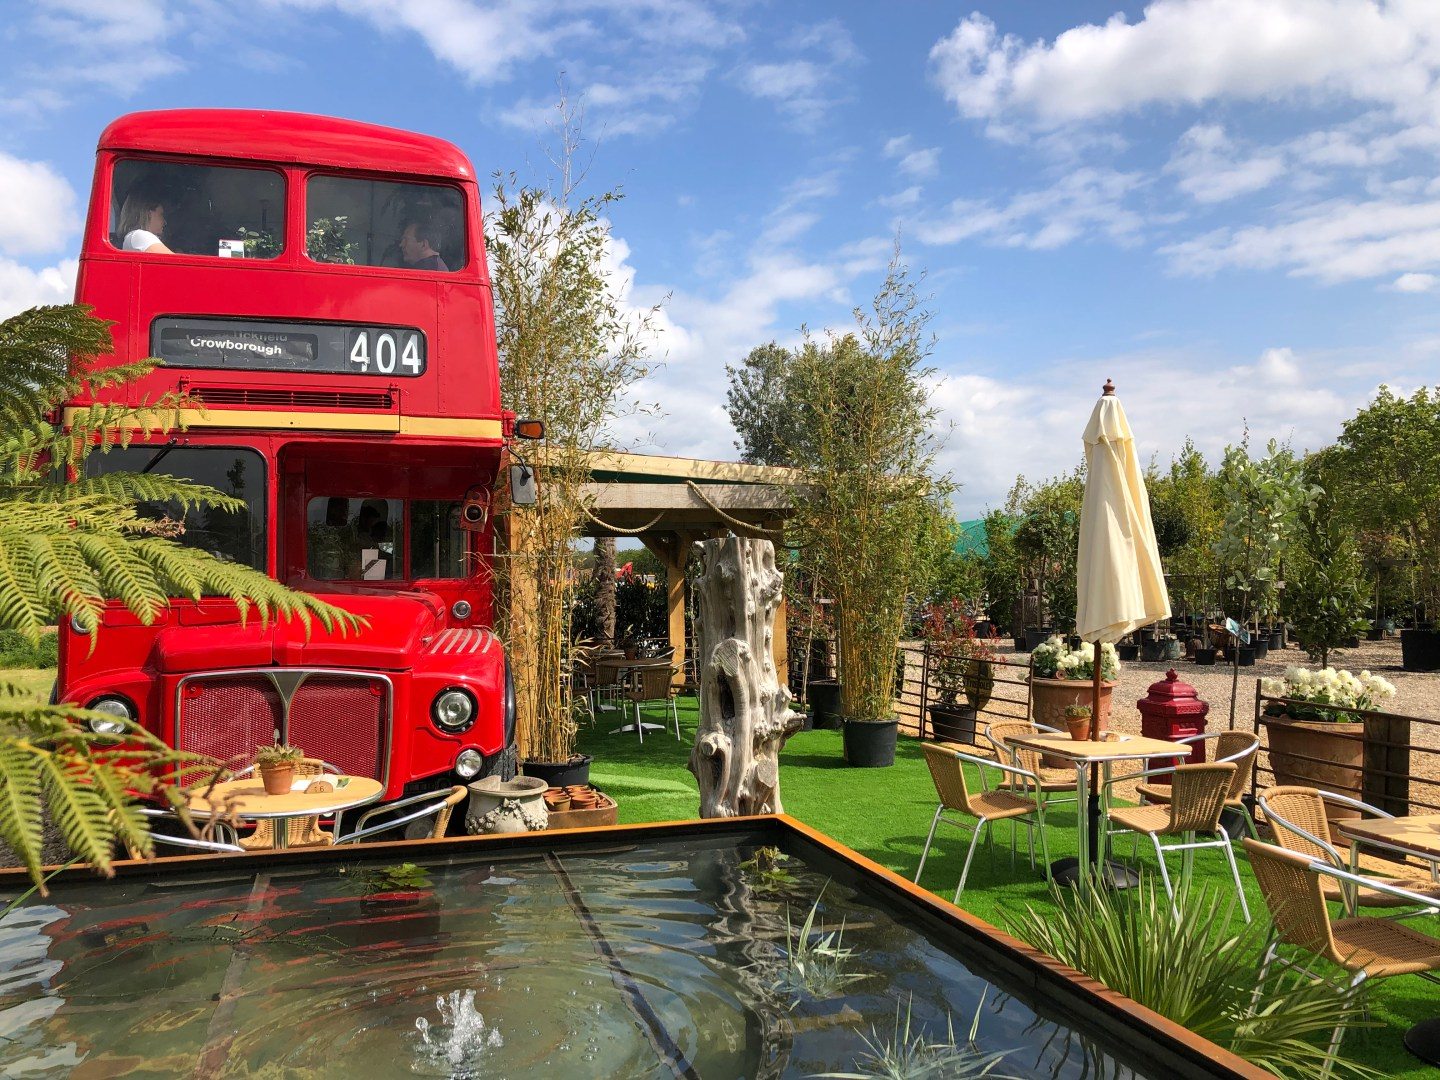 There is plenty of seating on the bus inside upstairs and a fully equipped kitchen. The bus also has a stunning outside space in the sunshine surrounded by the gorgeous Essex countryside. Tables and chairs are laced with potted plants whilst horses graze in the distance.